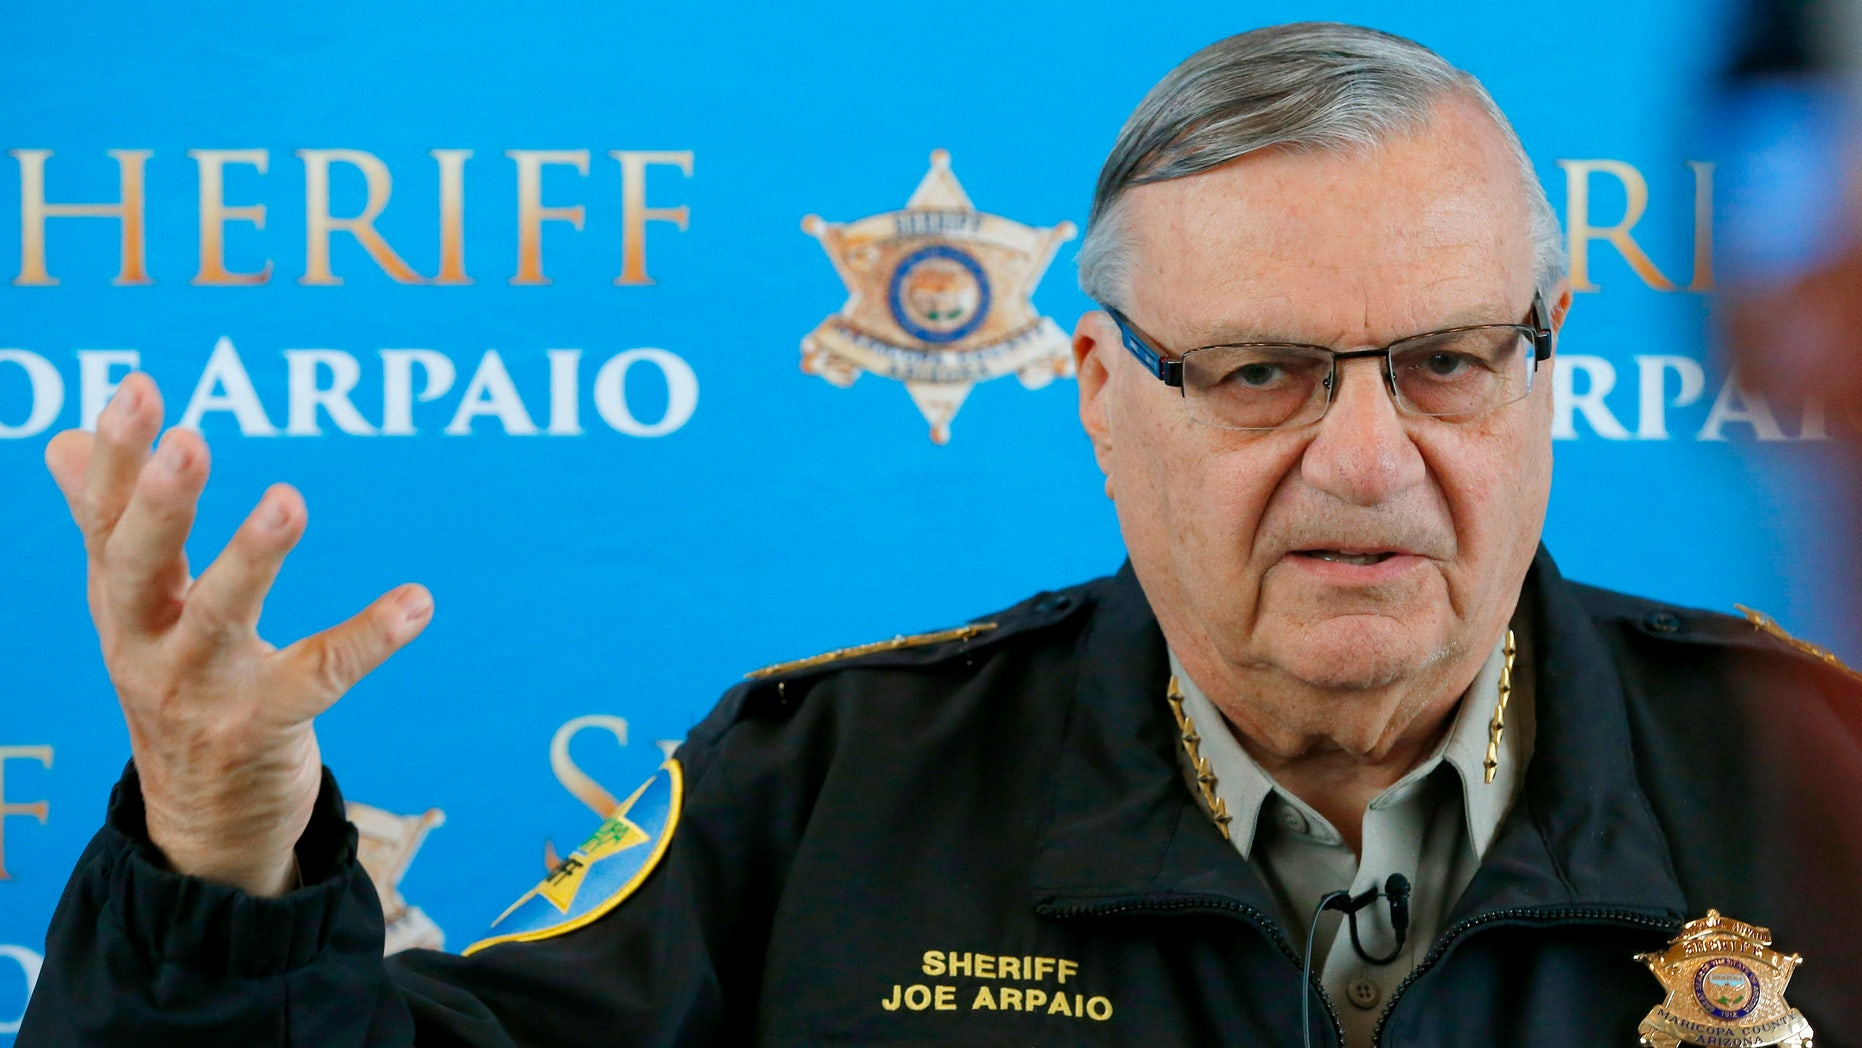 FILE - In this Dec. 18, 2013 file photo, Maricopa County Sheriff Joe Arpaio announces dozens of arrests in a prostitution sting during a news conference at Maricopa County Sheriff's Office Headquarters in Phoenix.   Arpaio, who has often clashed with the federal government over the enforcement of immigration laws has filed a lawsuit to stop new policies announced by President Barack Obama. The suit filed Thursday, Nov. 20, 2014 in federal court in Washington on behalf of Maricopa County Sheriff Joe Arpaio contends Obama acted outside his constitutional authority by not going through Congress.  (AP Photo/Ross D. Franklin)